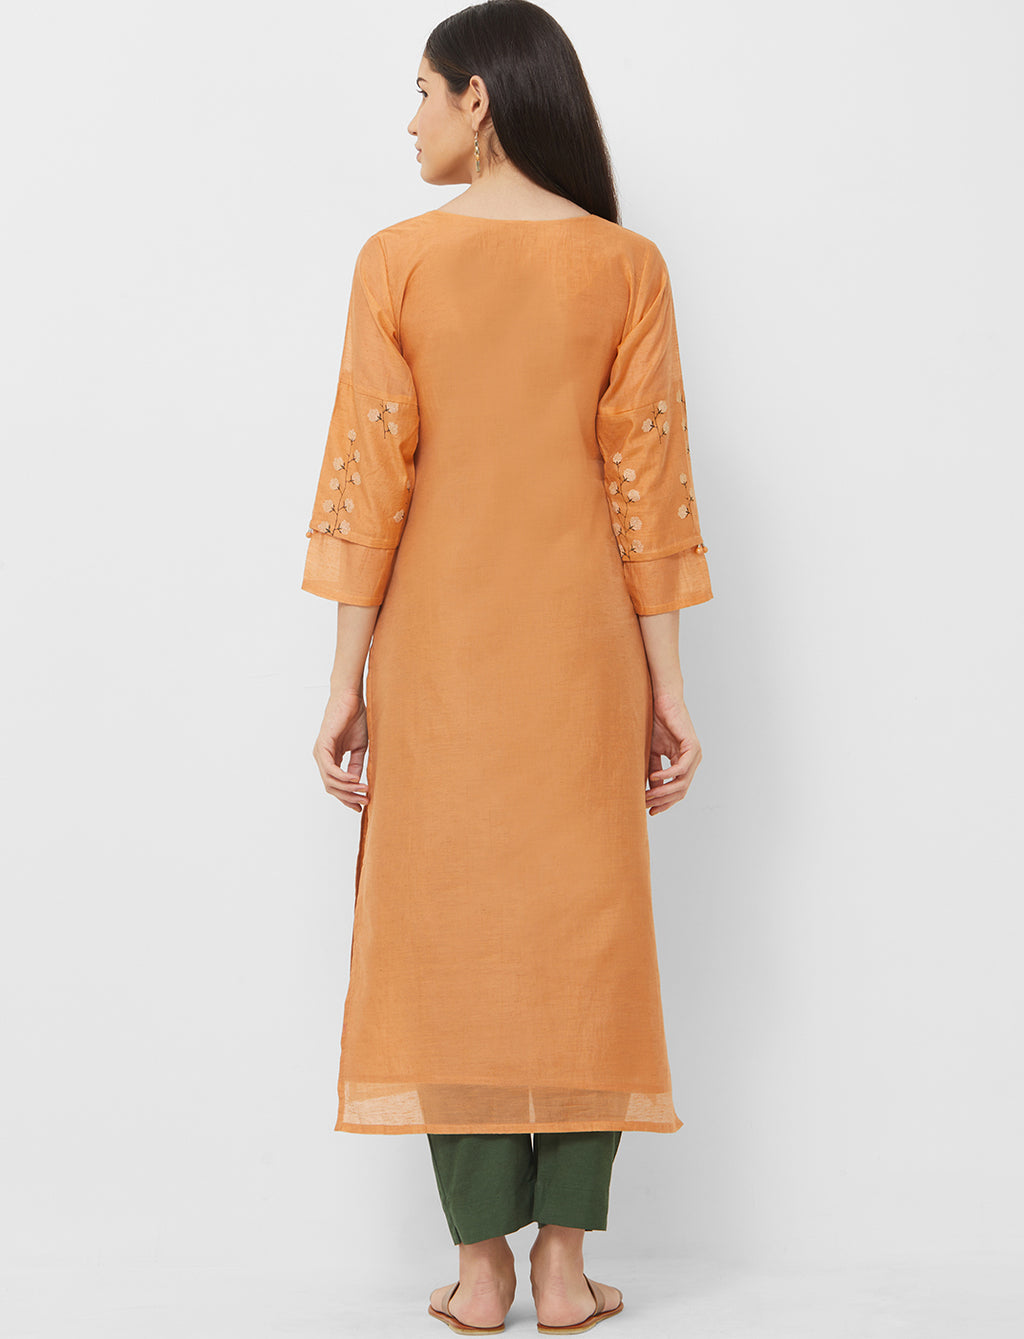 Light Orange Color Cotton Readymade Casual Party Kurtis NYF-5430